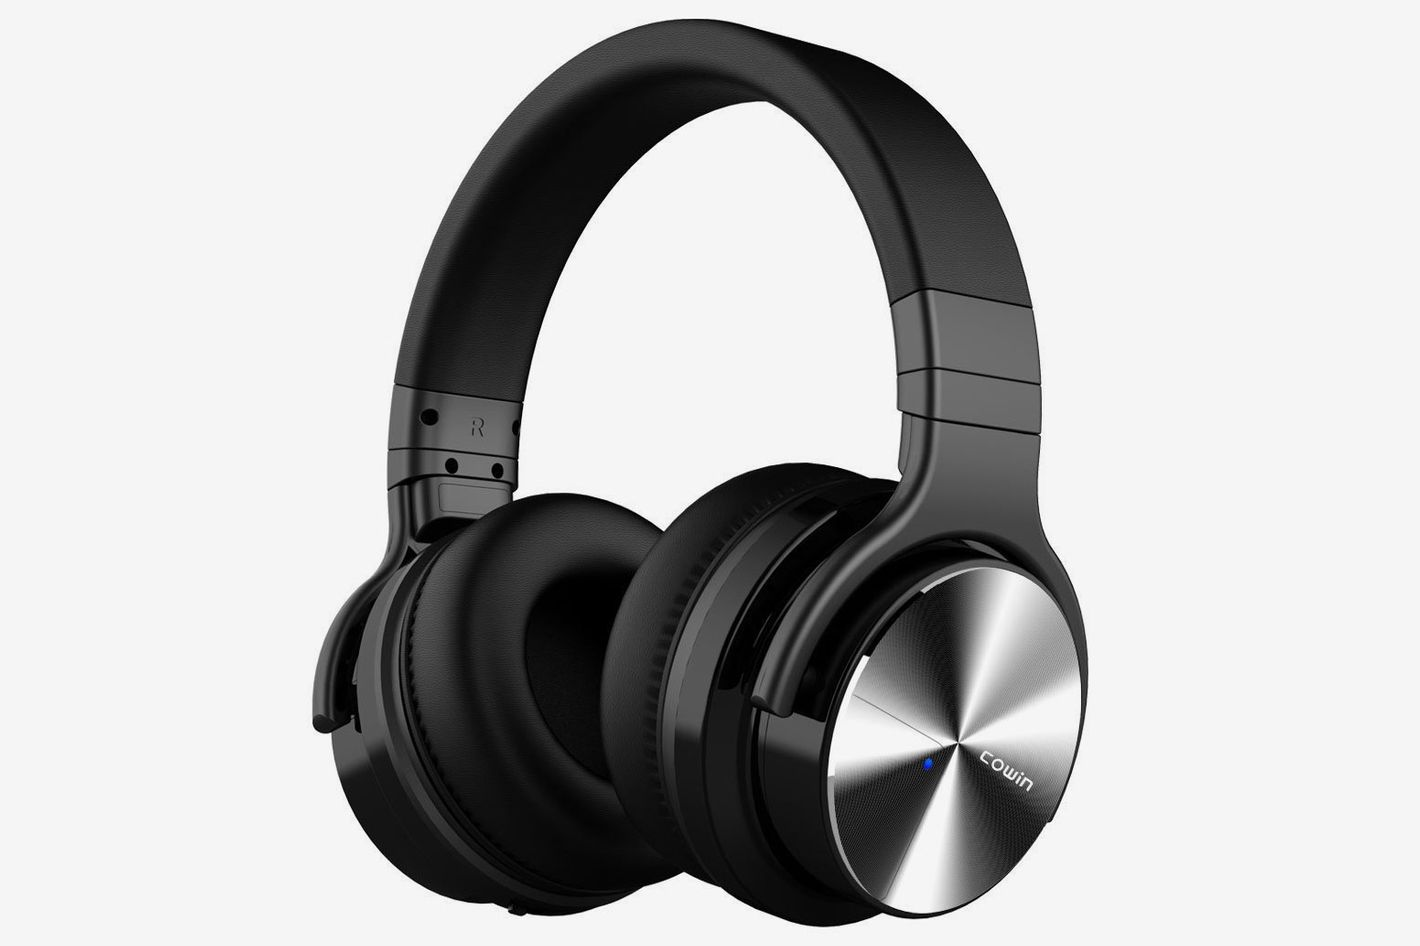 Cowin E7 Pro [2018 Upgraded] Active Noise Cancelling Headphones